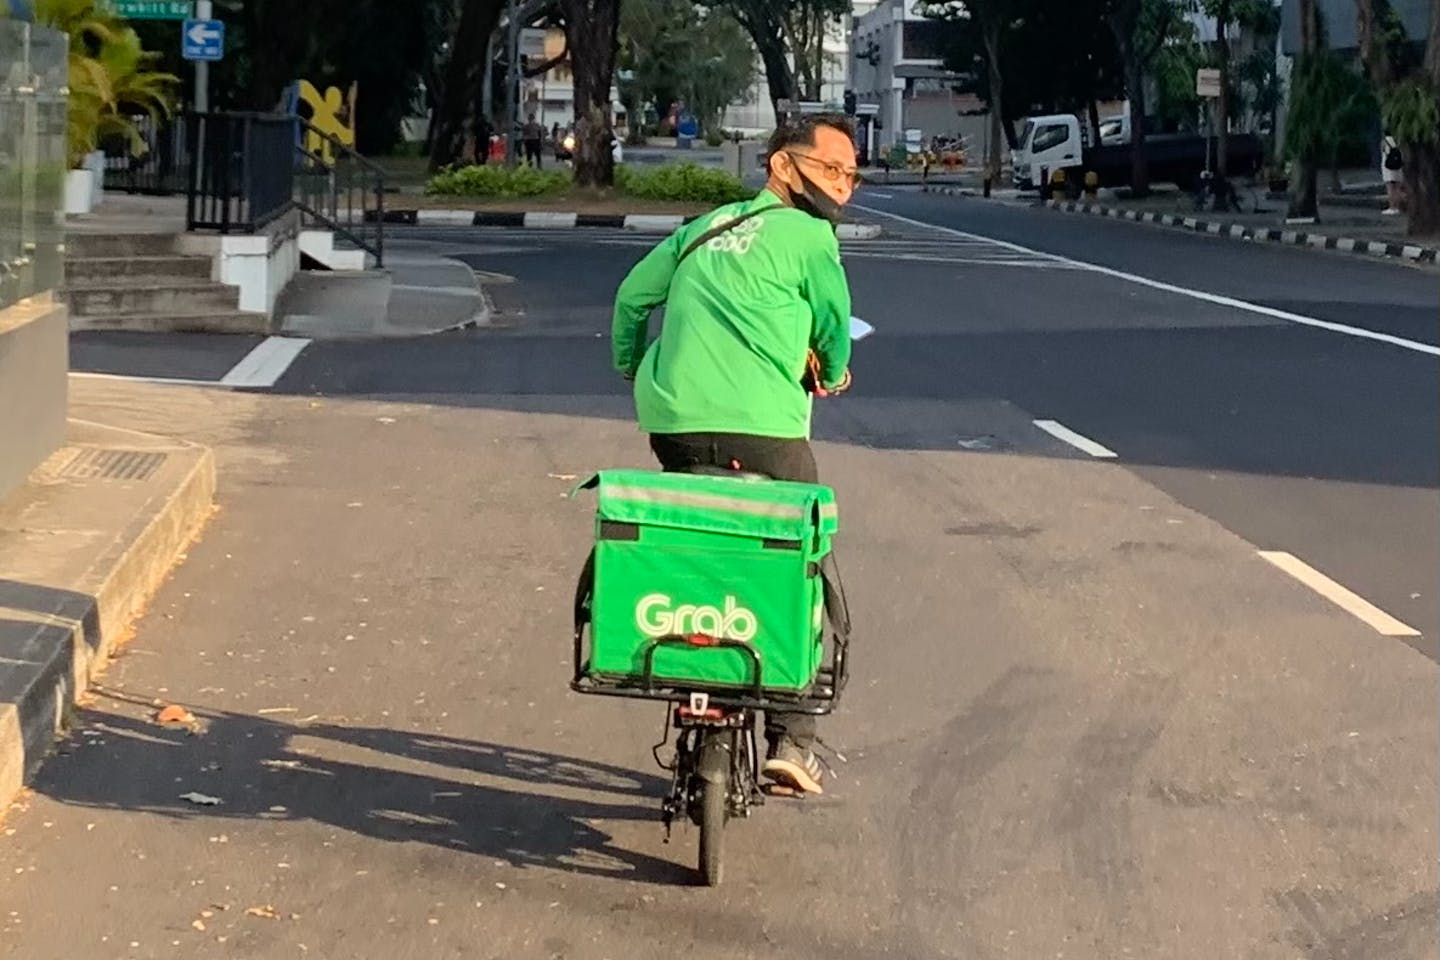 A GrabFood driver riding an e-scooter in Little India, Singapore.